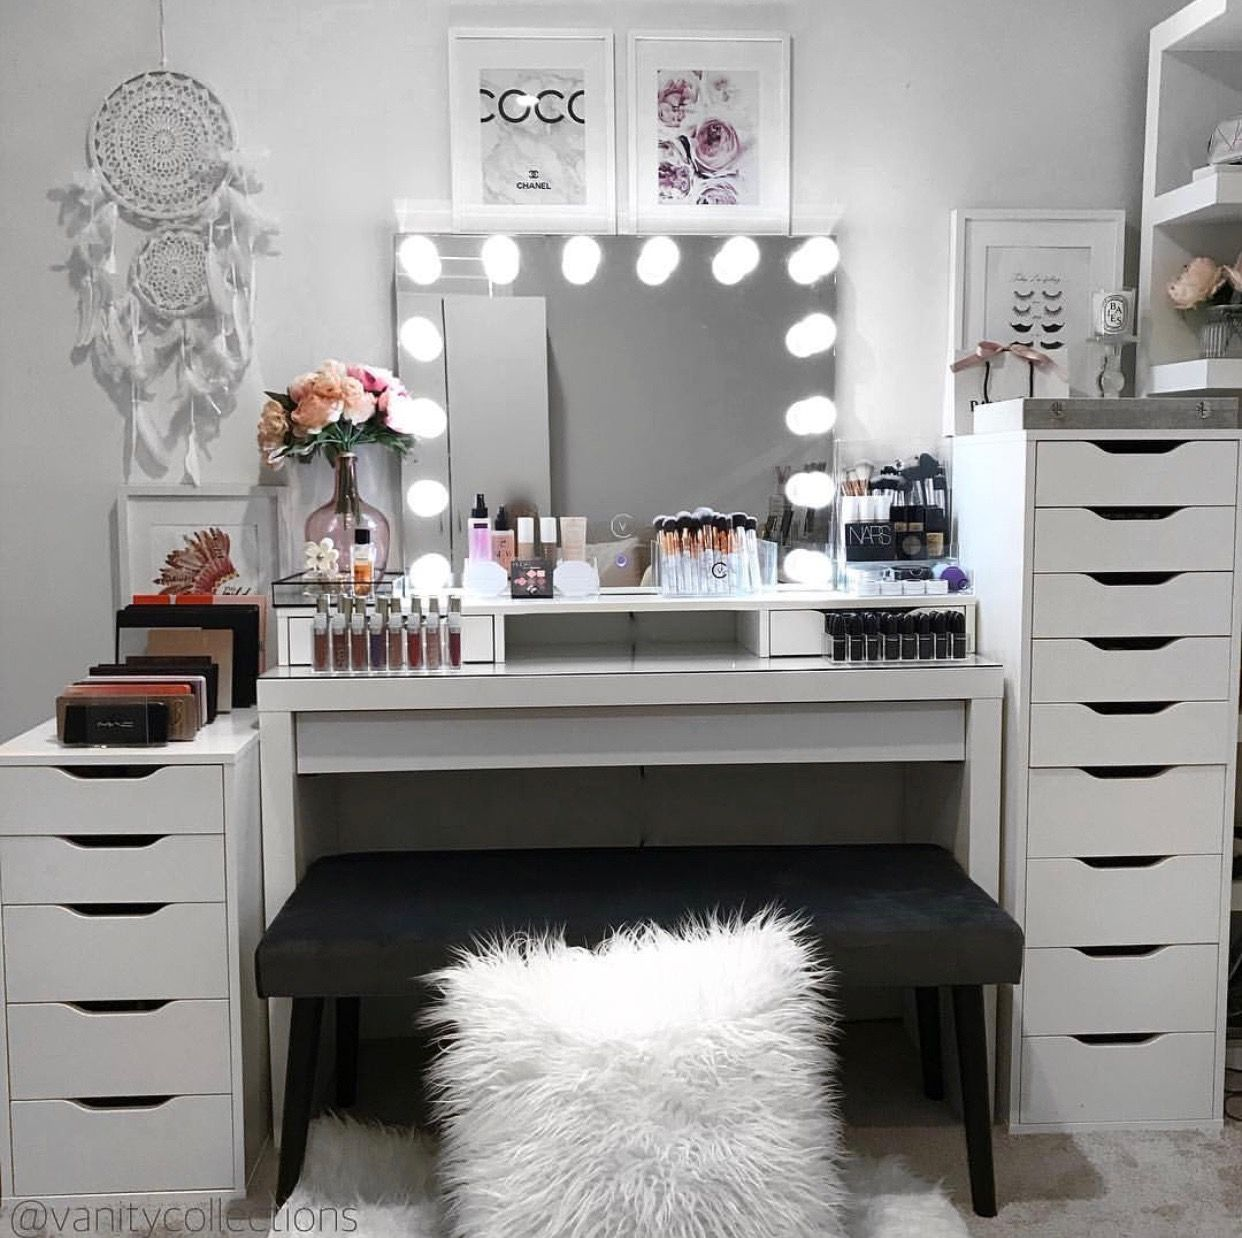 This amazing vanity could use some of our ikea alex drawer